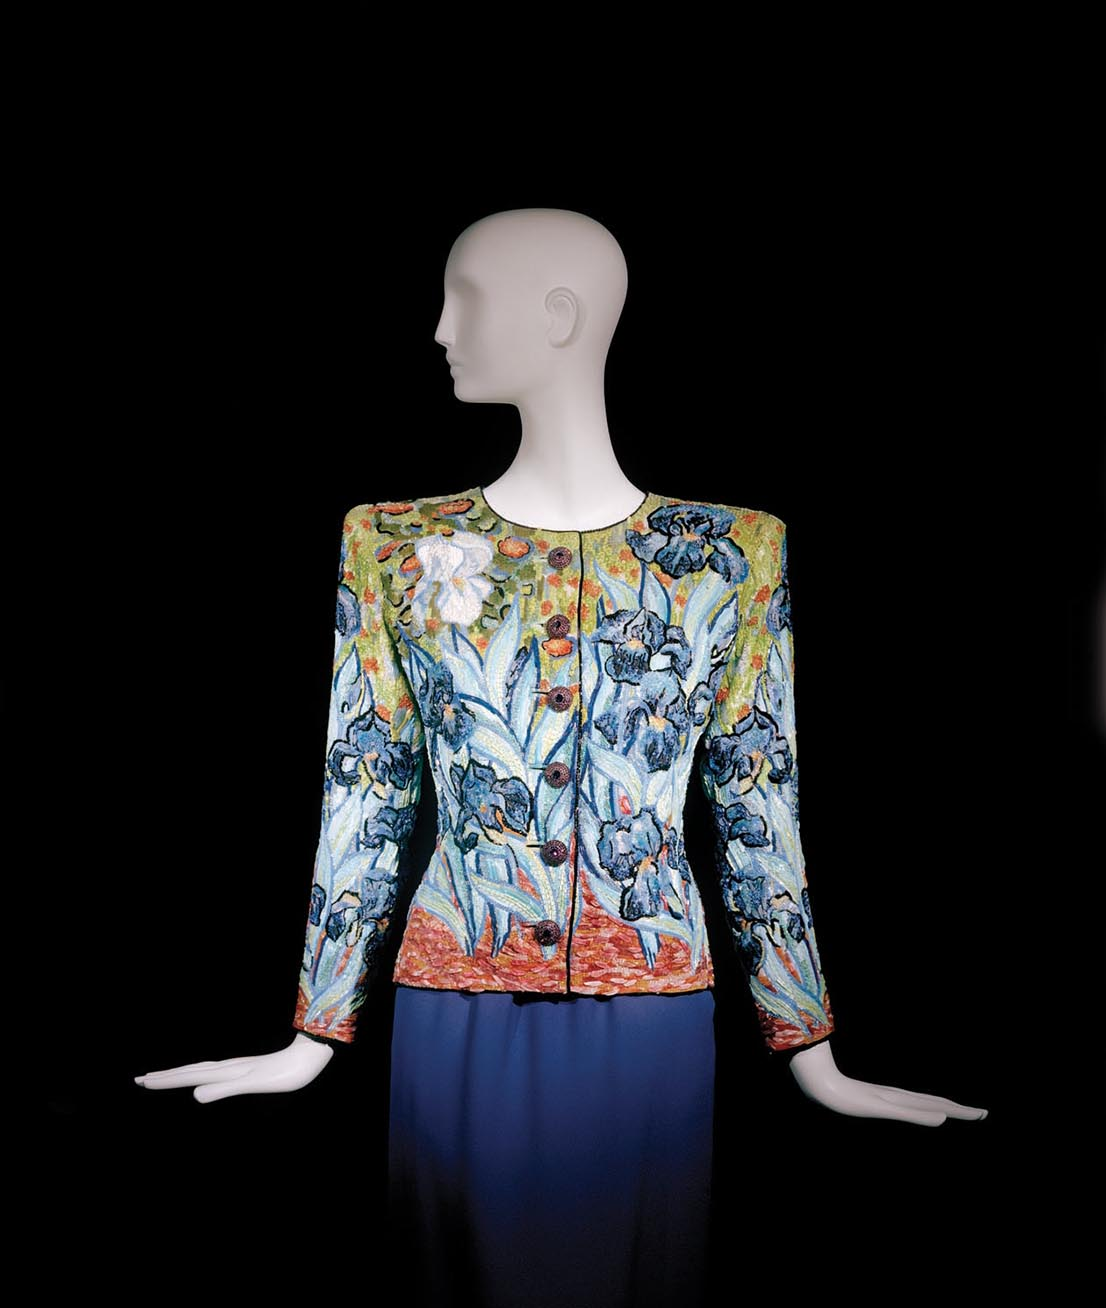 Yves Saint Laurent, short evening ensemble. Fall-Winter 1988. Tribute to Vincent van Gogh.